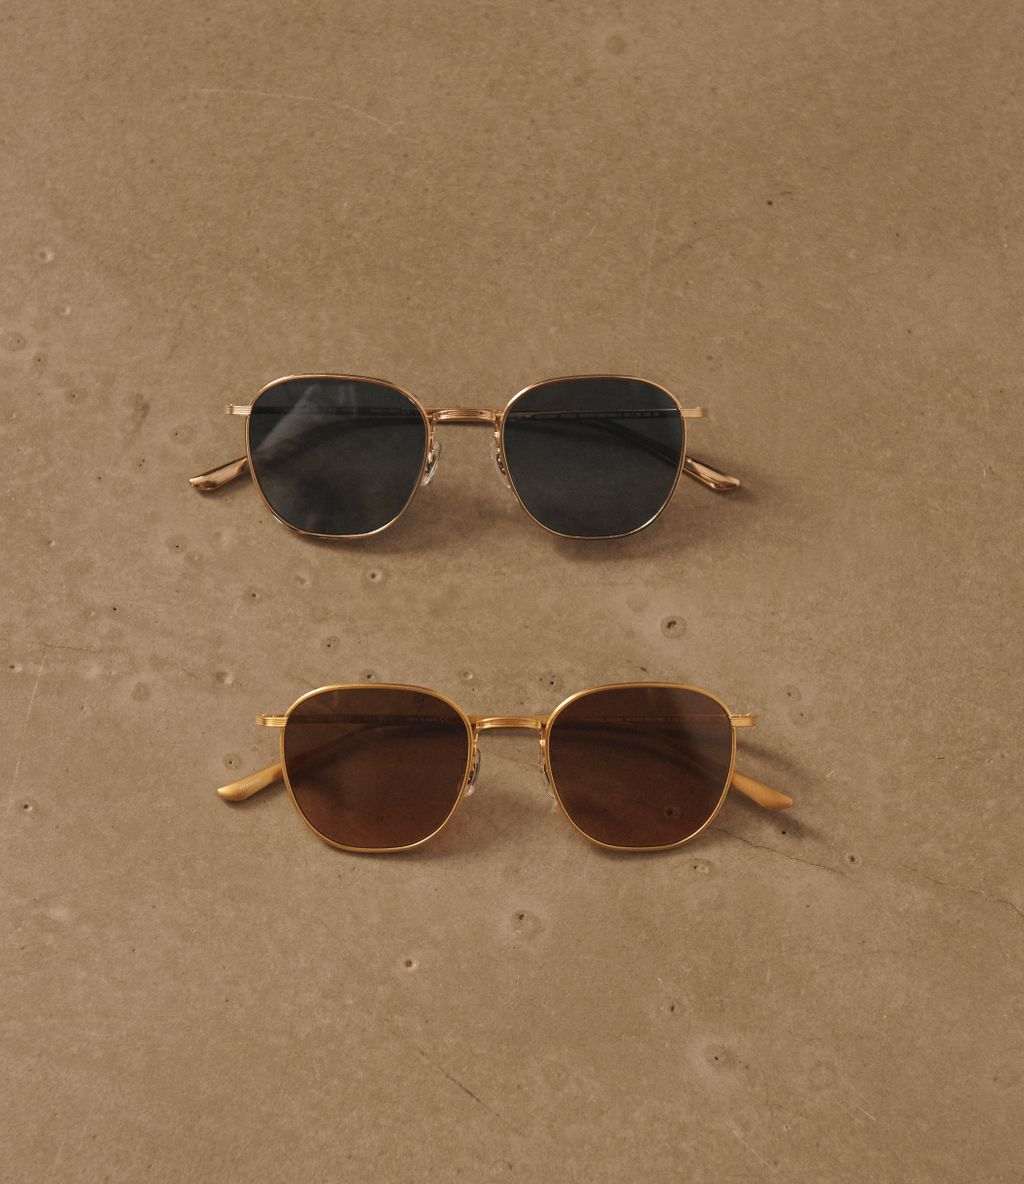 a35784cdb9f ... Gold + Marine Gradient and Brushed Bright Gold + Brown Rust Gradient.  Discover new styles from The Row on  Oliverpeoples .compic.twitter.com 2Lb6YHir3s